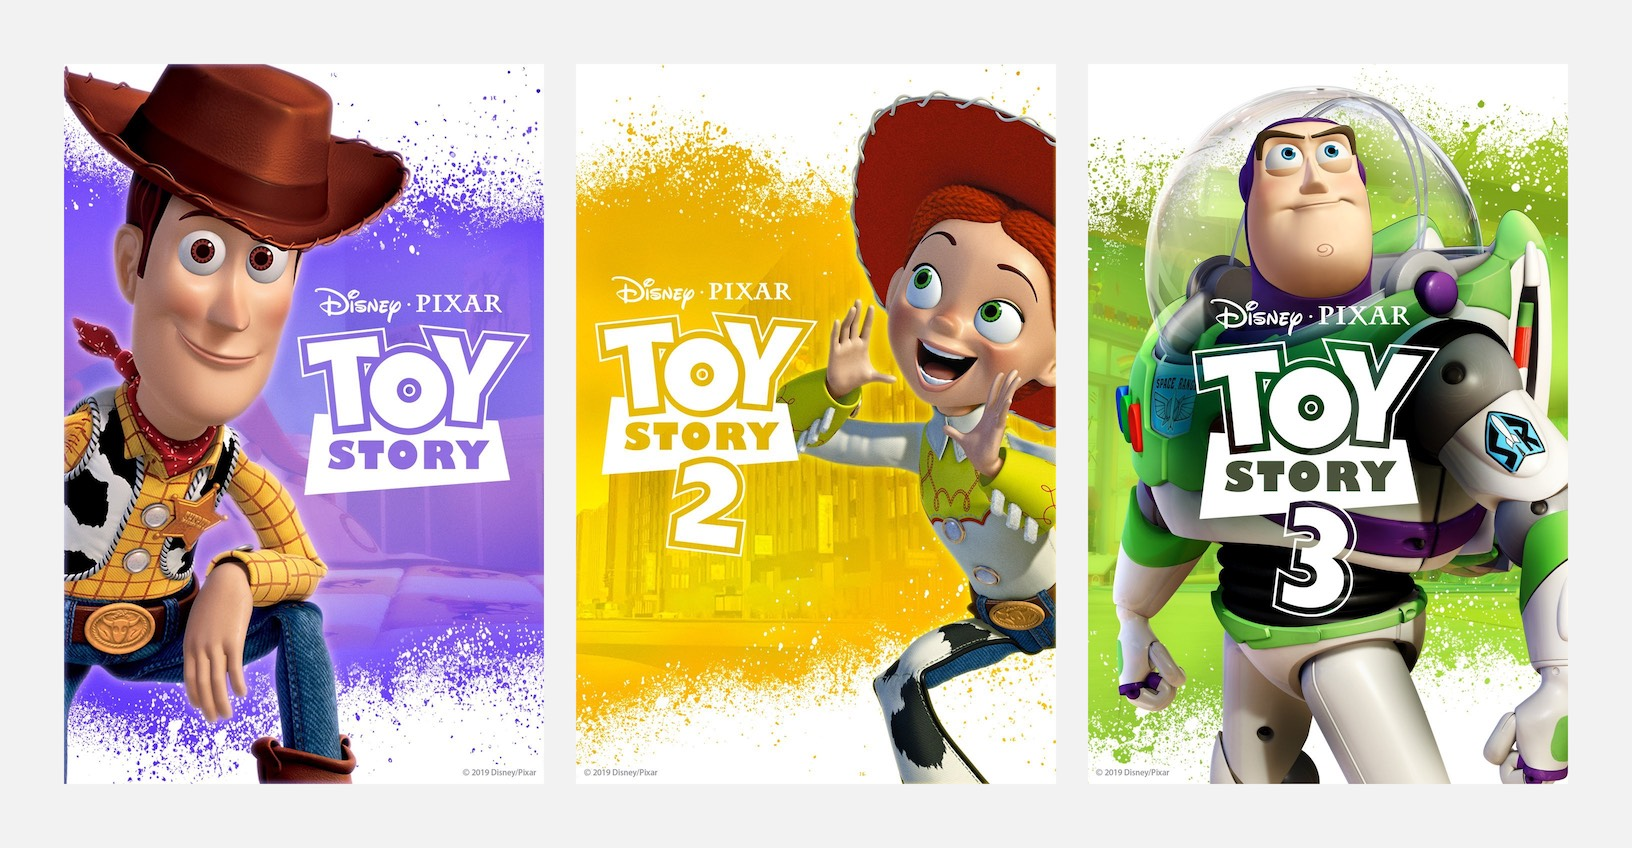 New Toy Story posters